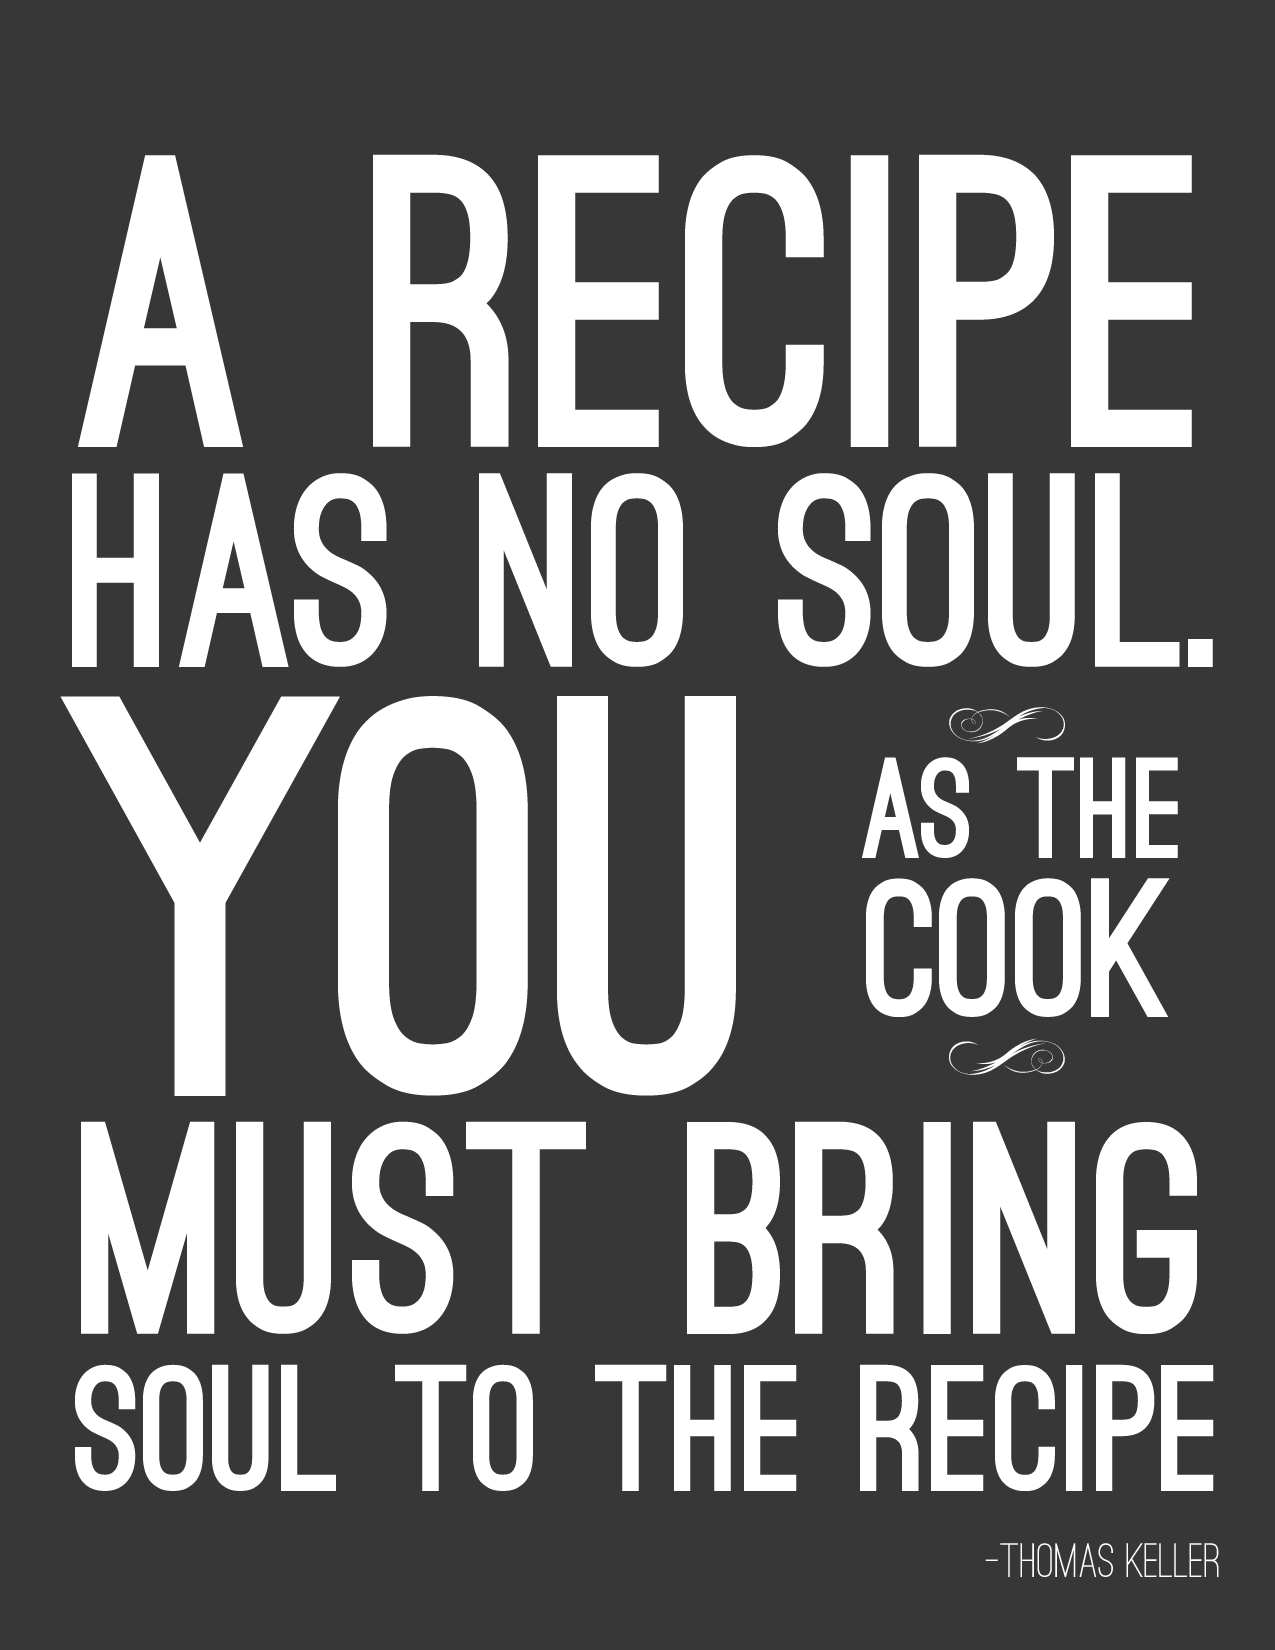 Humor Quotes And Sayings: Funny Kitchen Quotes And Sayings. QuotesGram